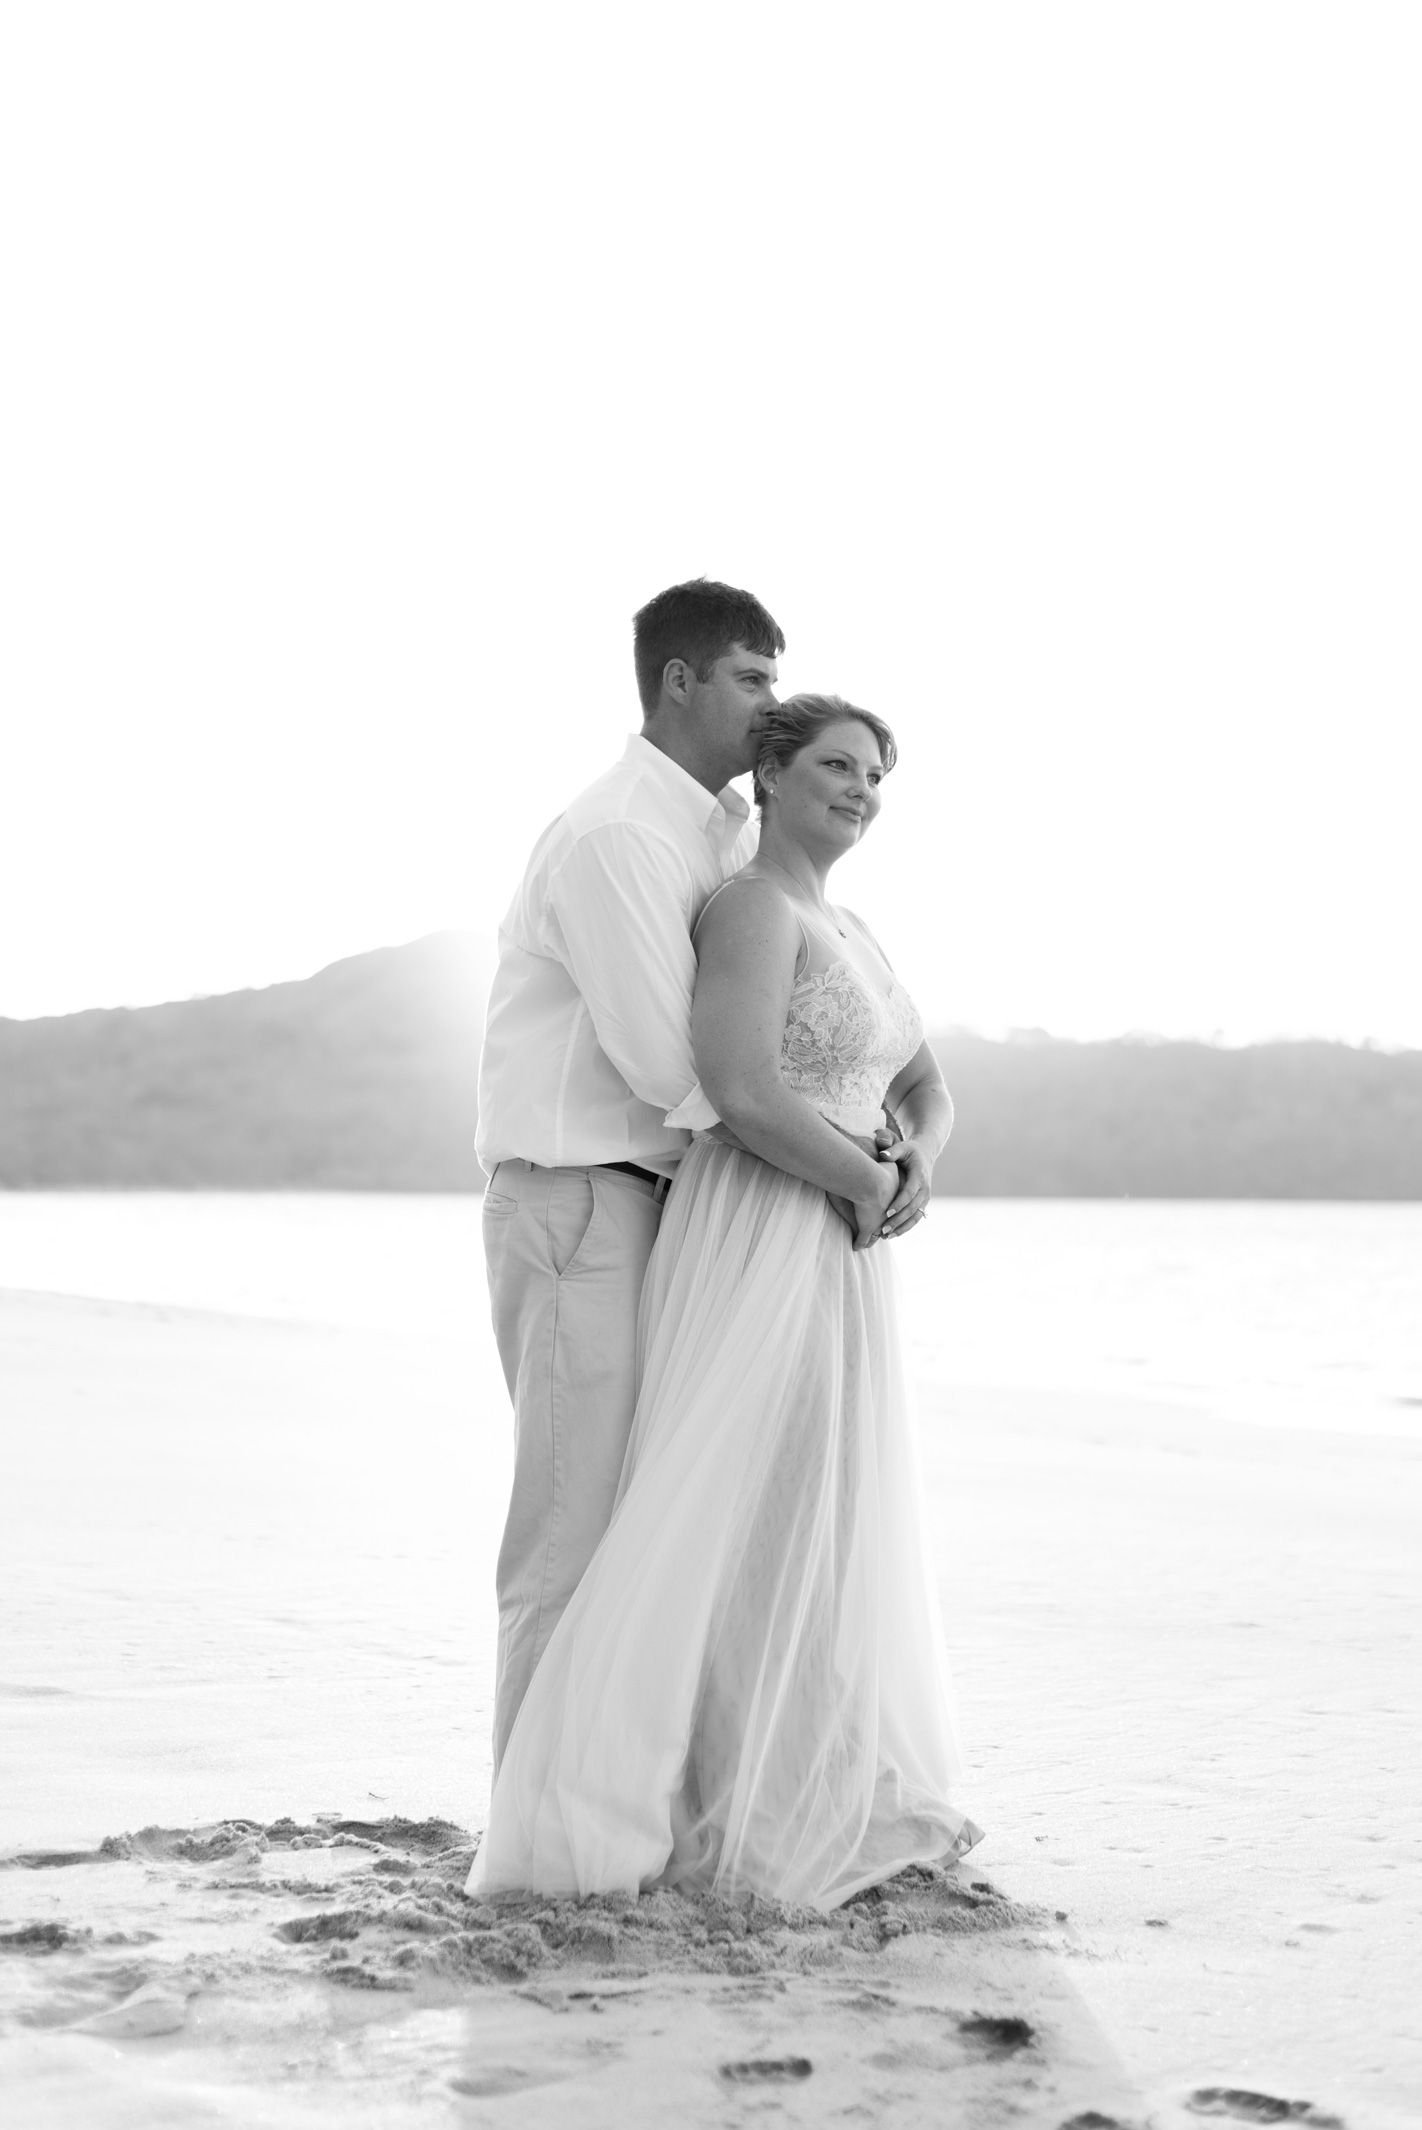 Black and white photo of bride and groom on Playa Conchal Costa Rica Wedding. Photographed by Kristen M. Brown, Samba to the Sea Photography.